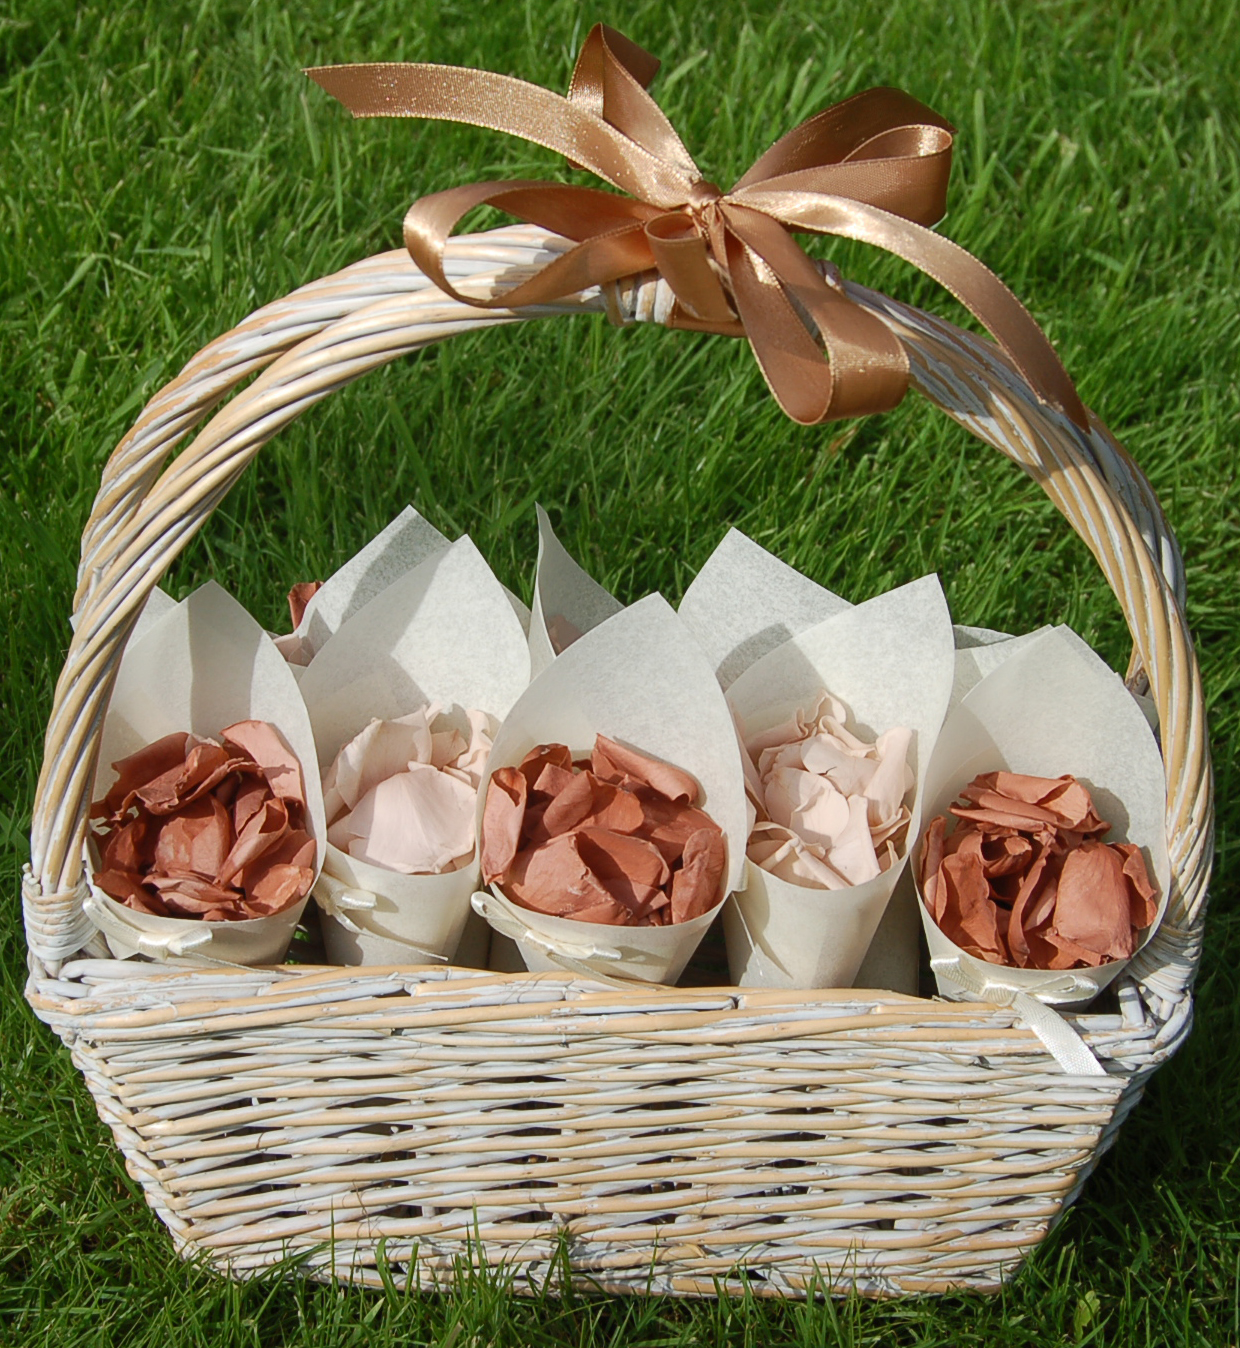 Wedding Baskets For Flower Petals : The confetti october